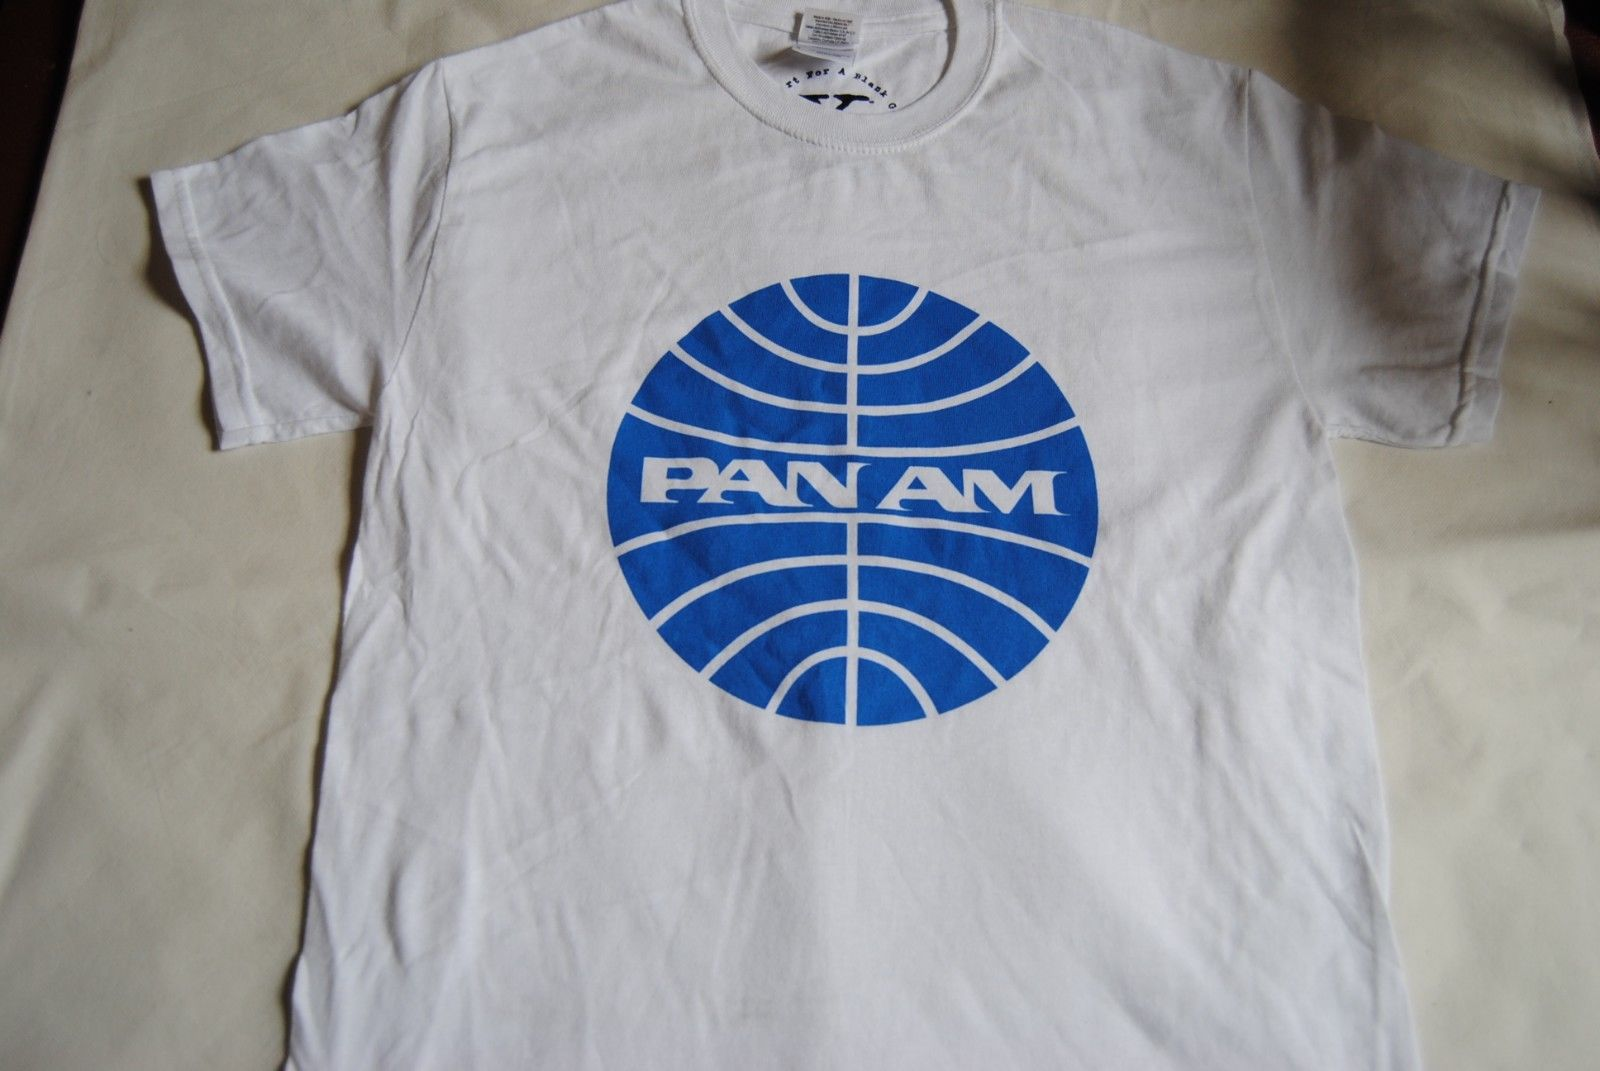 PAN AM LOGO T SHIRT NEW PAN AMERICAN WORLD AIRWAYS THE BLUE MEATBALL RETRO Print T-Shirts Men top tee Print Men T Shirt Summer